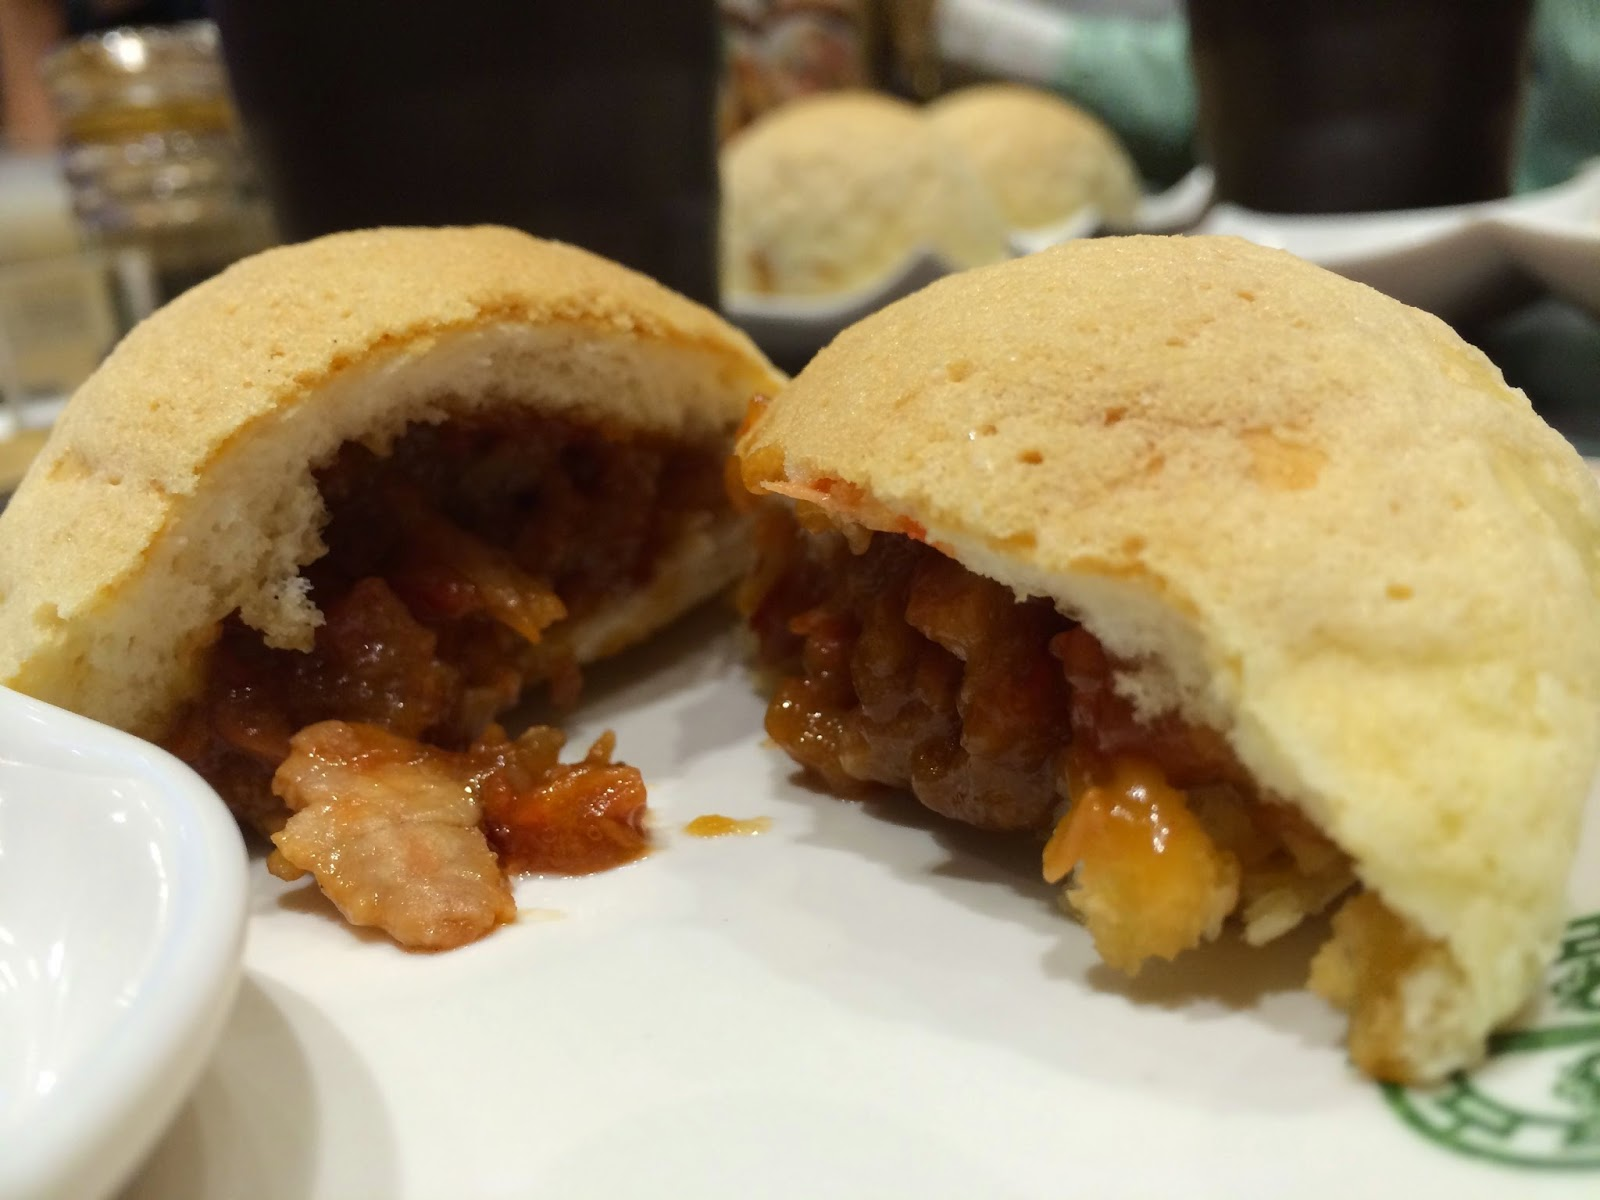 BBQ Pork Buns at Tim Ho Wan